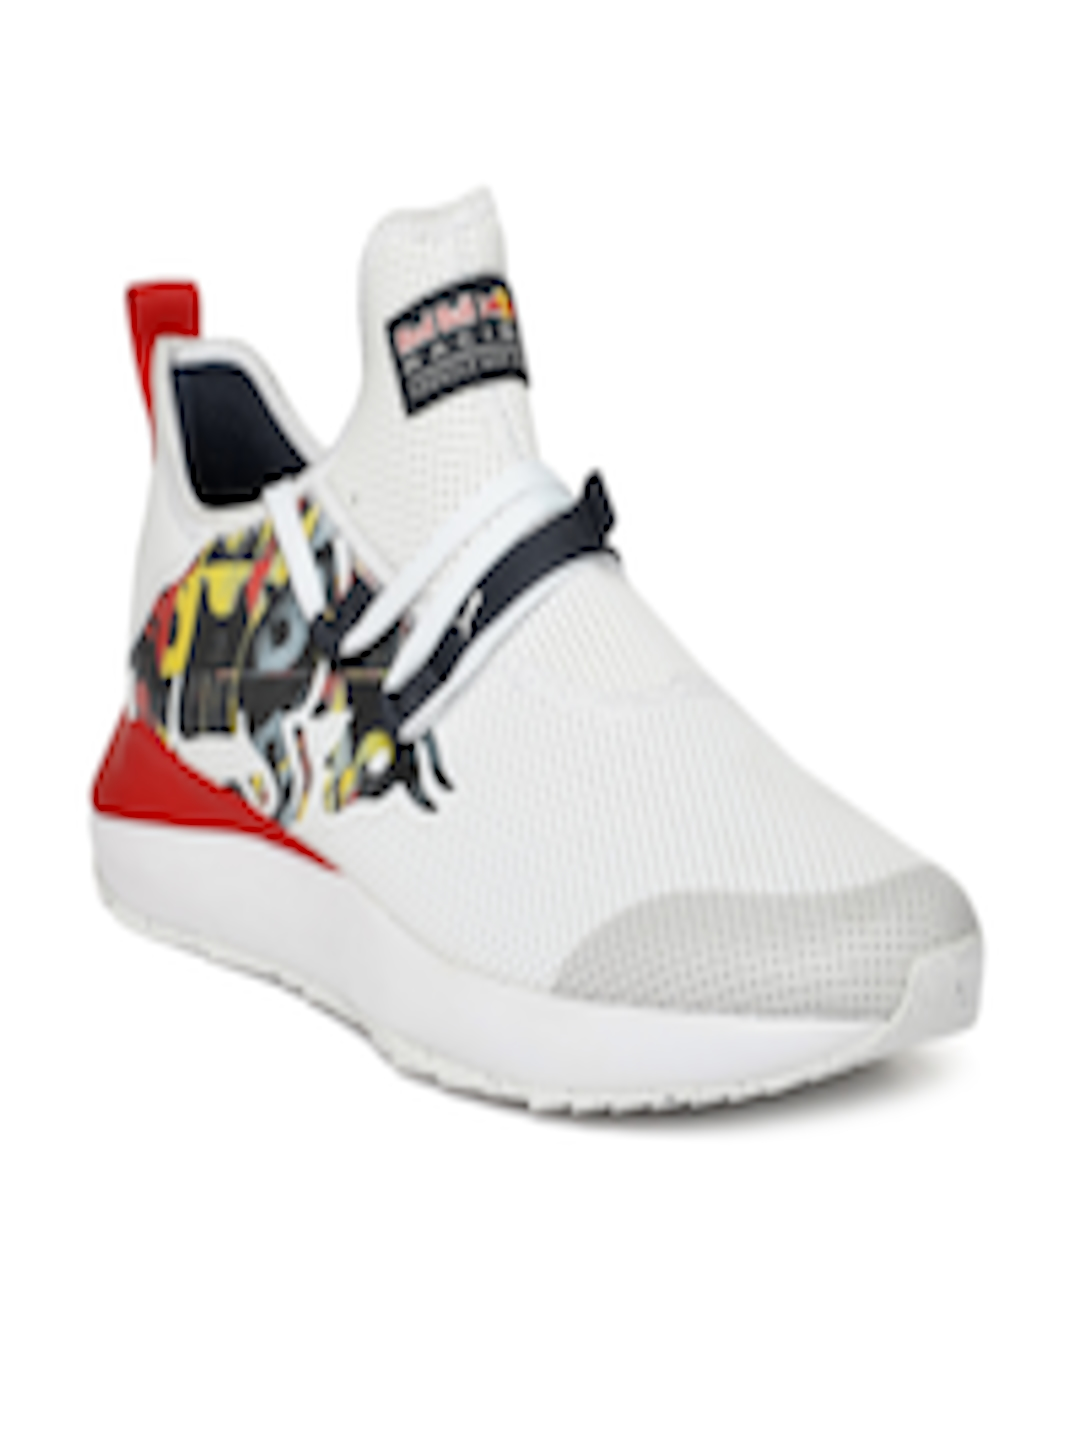 Buy Puma Men White   Red Printed RBR Evo Cat II Bulls Sneakers ... 49b401ddb